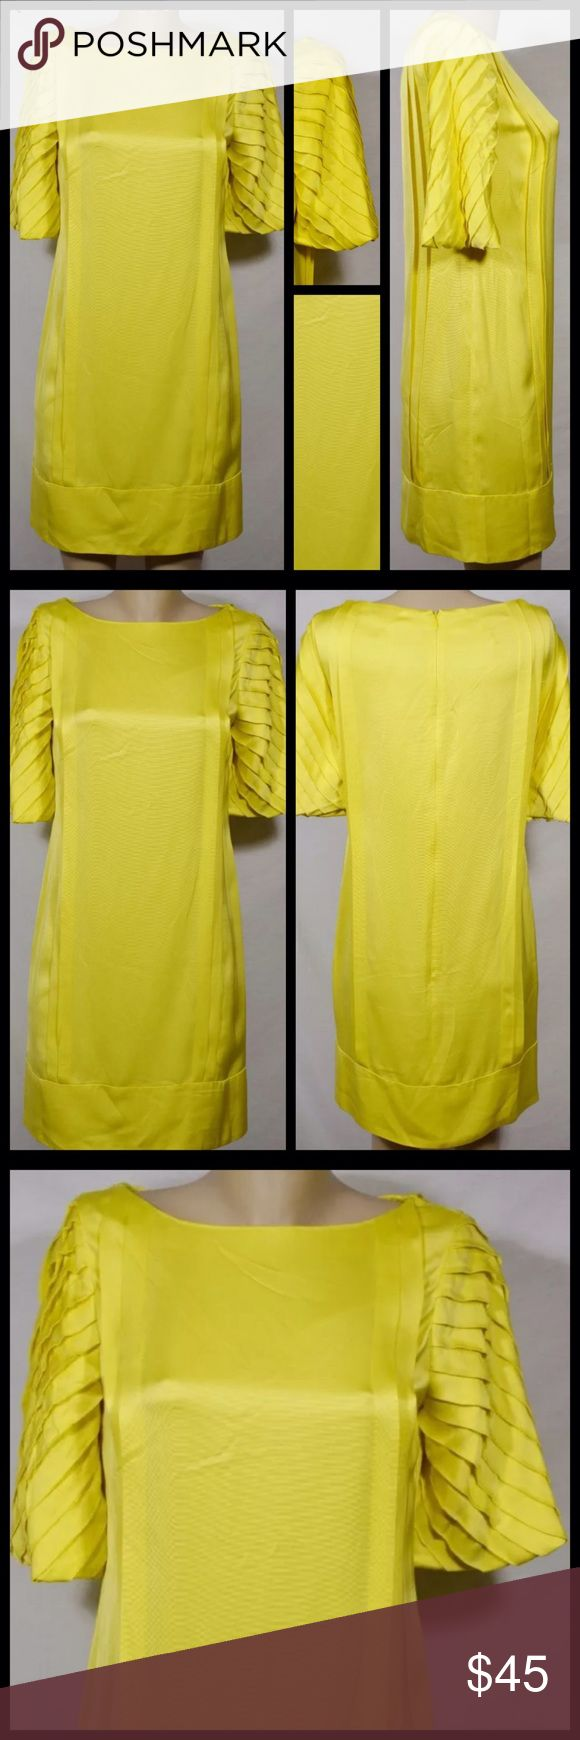 Yellow Reiss dress with pleated sleeves, size 6 Adorable yellow Reis cocktail dress with shutter pleated sleeves. Size 6 (UK suze 10). Reiss Dresses Midi